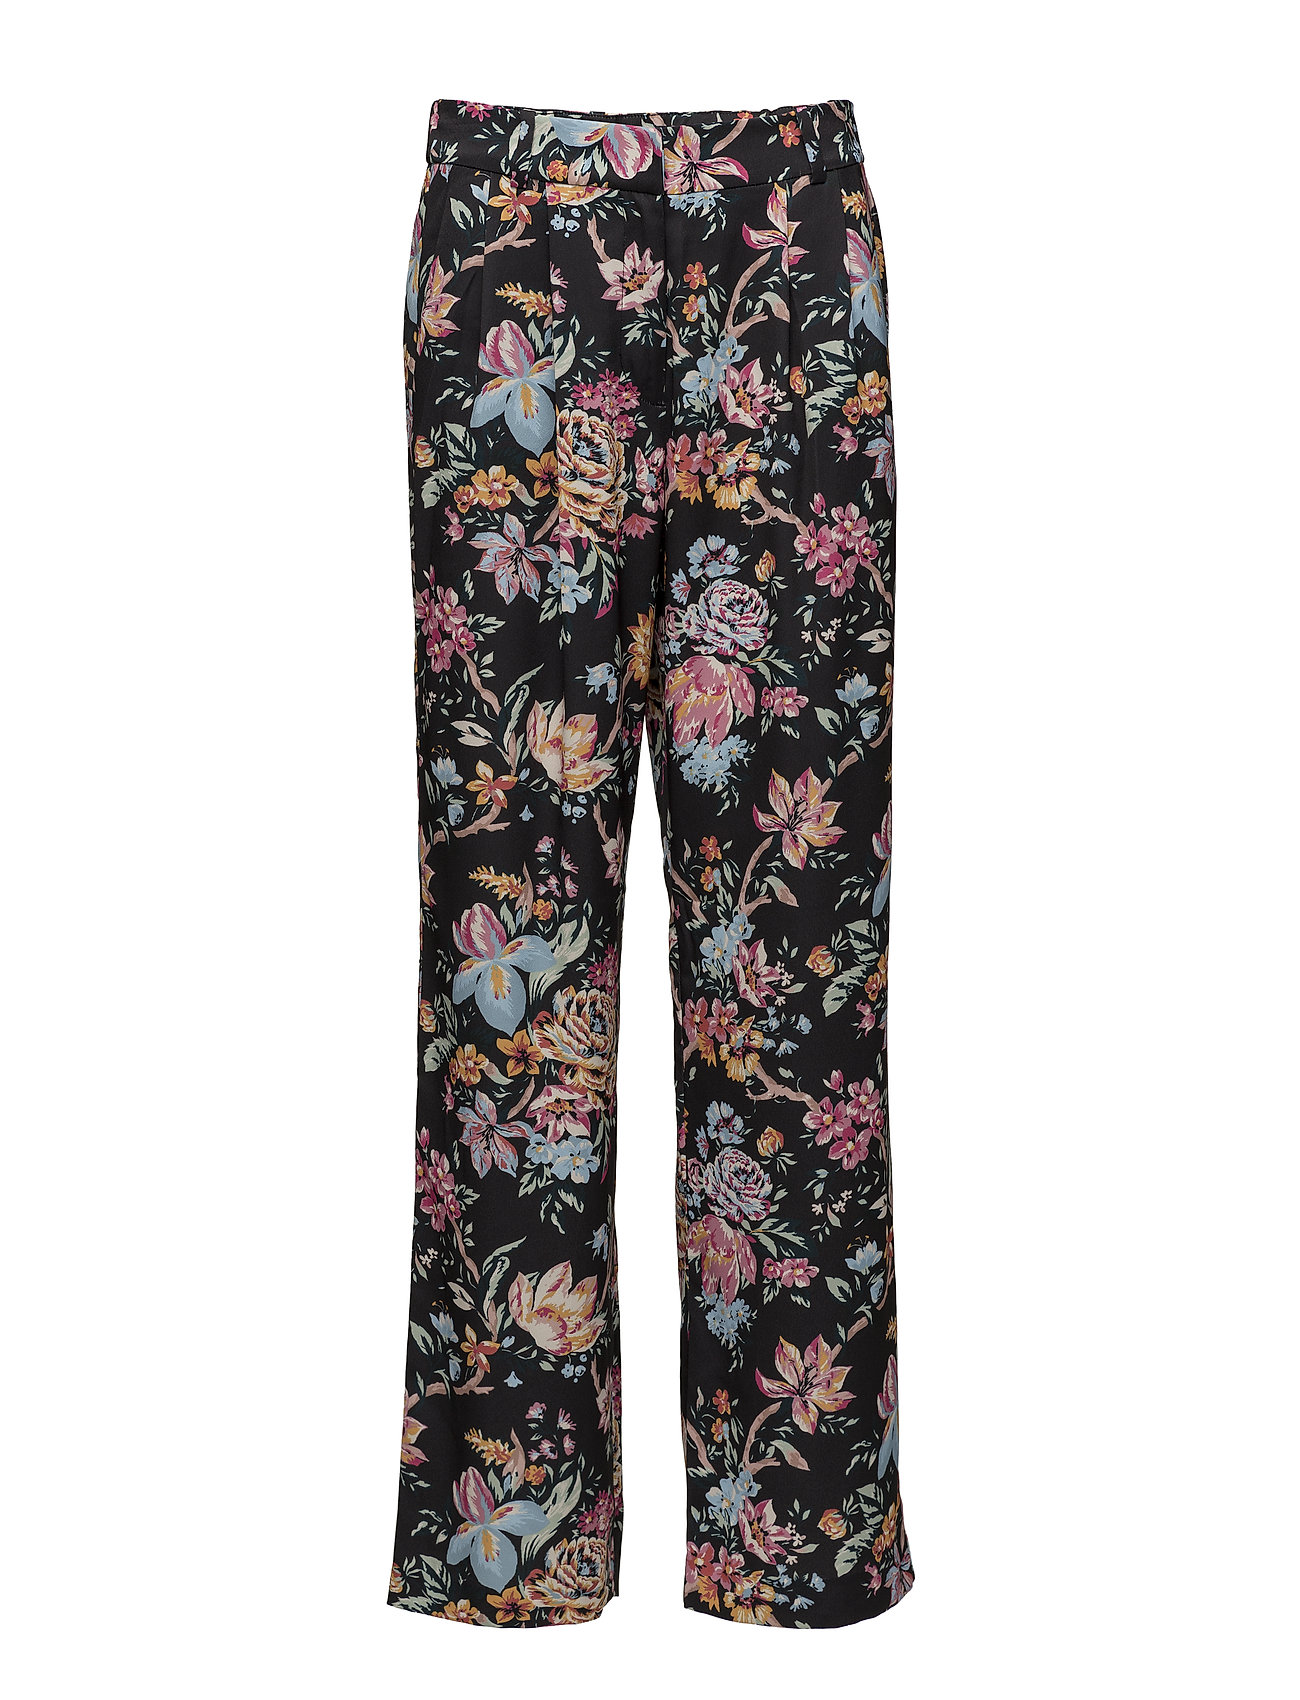 French Connection PF BRIDGET SATIN RELAXED TRSR - MULTI/BLACK